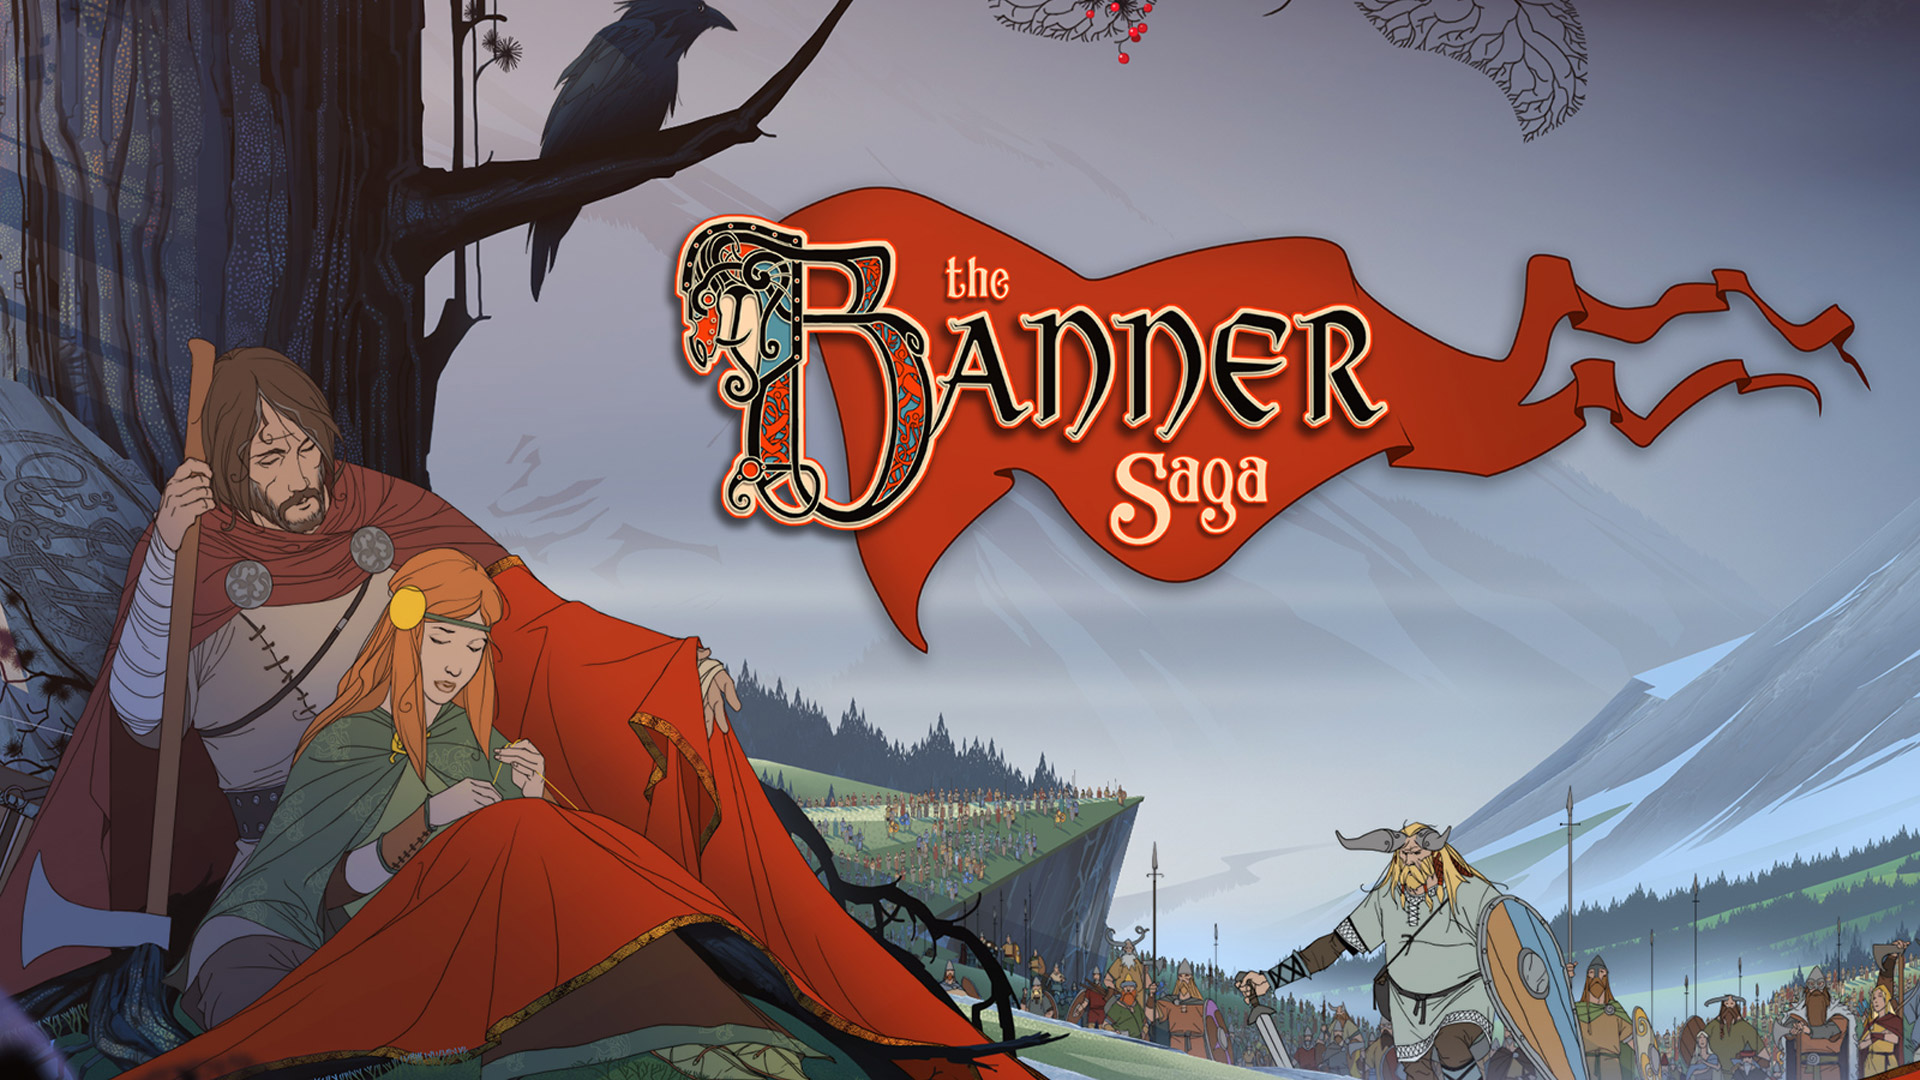 Free The Banner Saga Wallpaper in 1920x1080